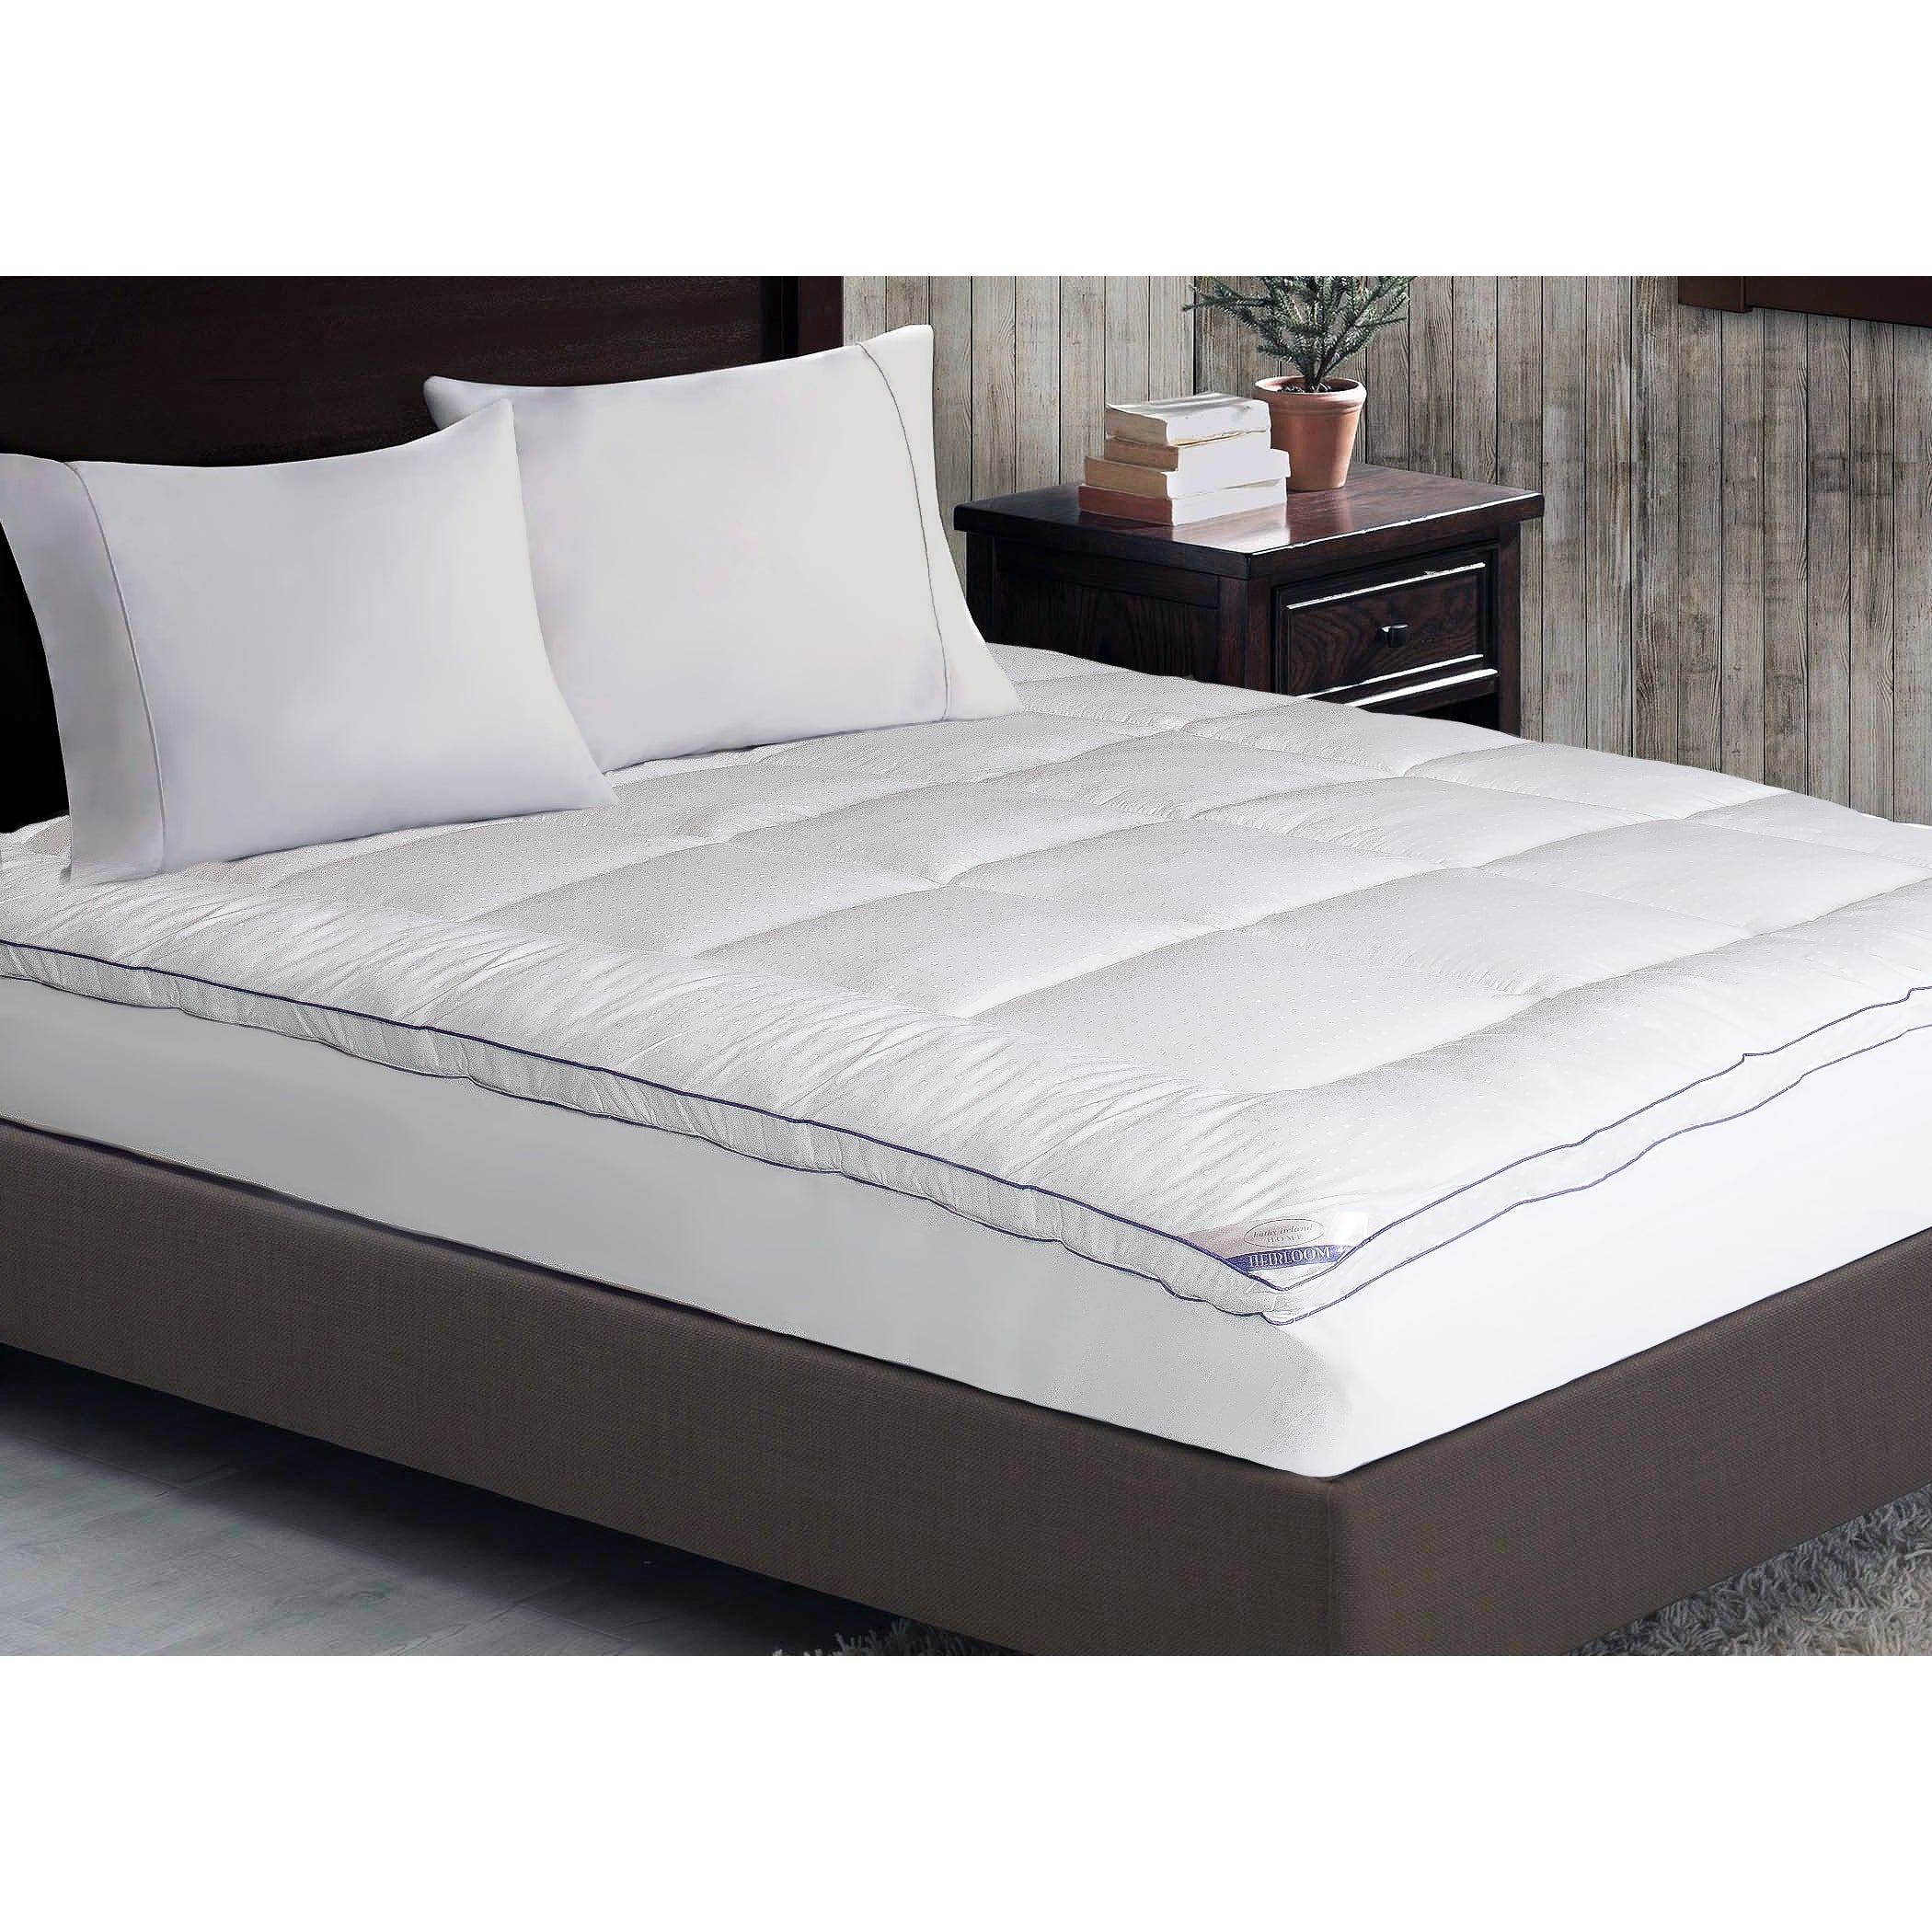 kathy ireland home 1000 thread count cotton rich mattress pad